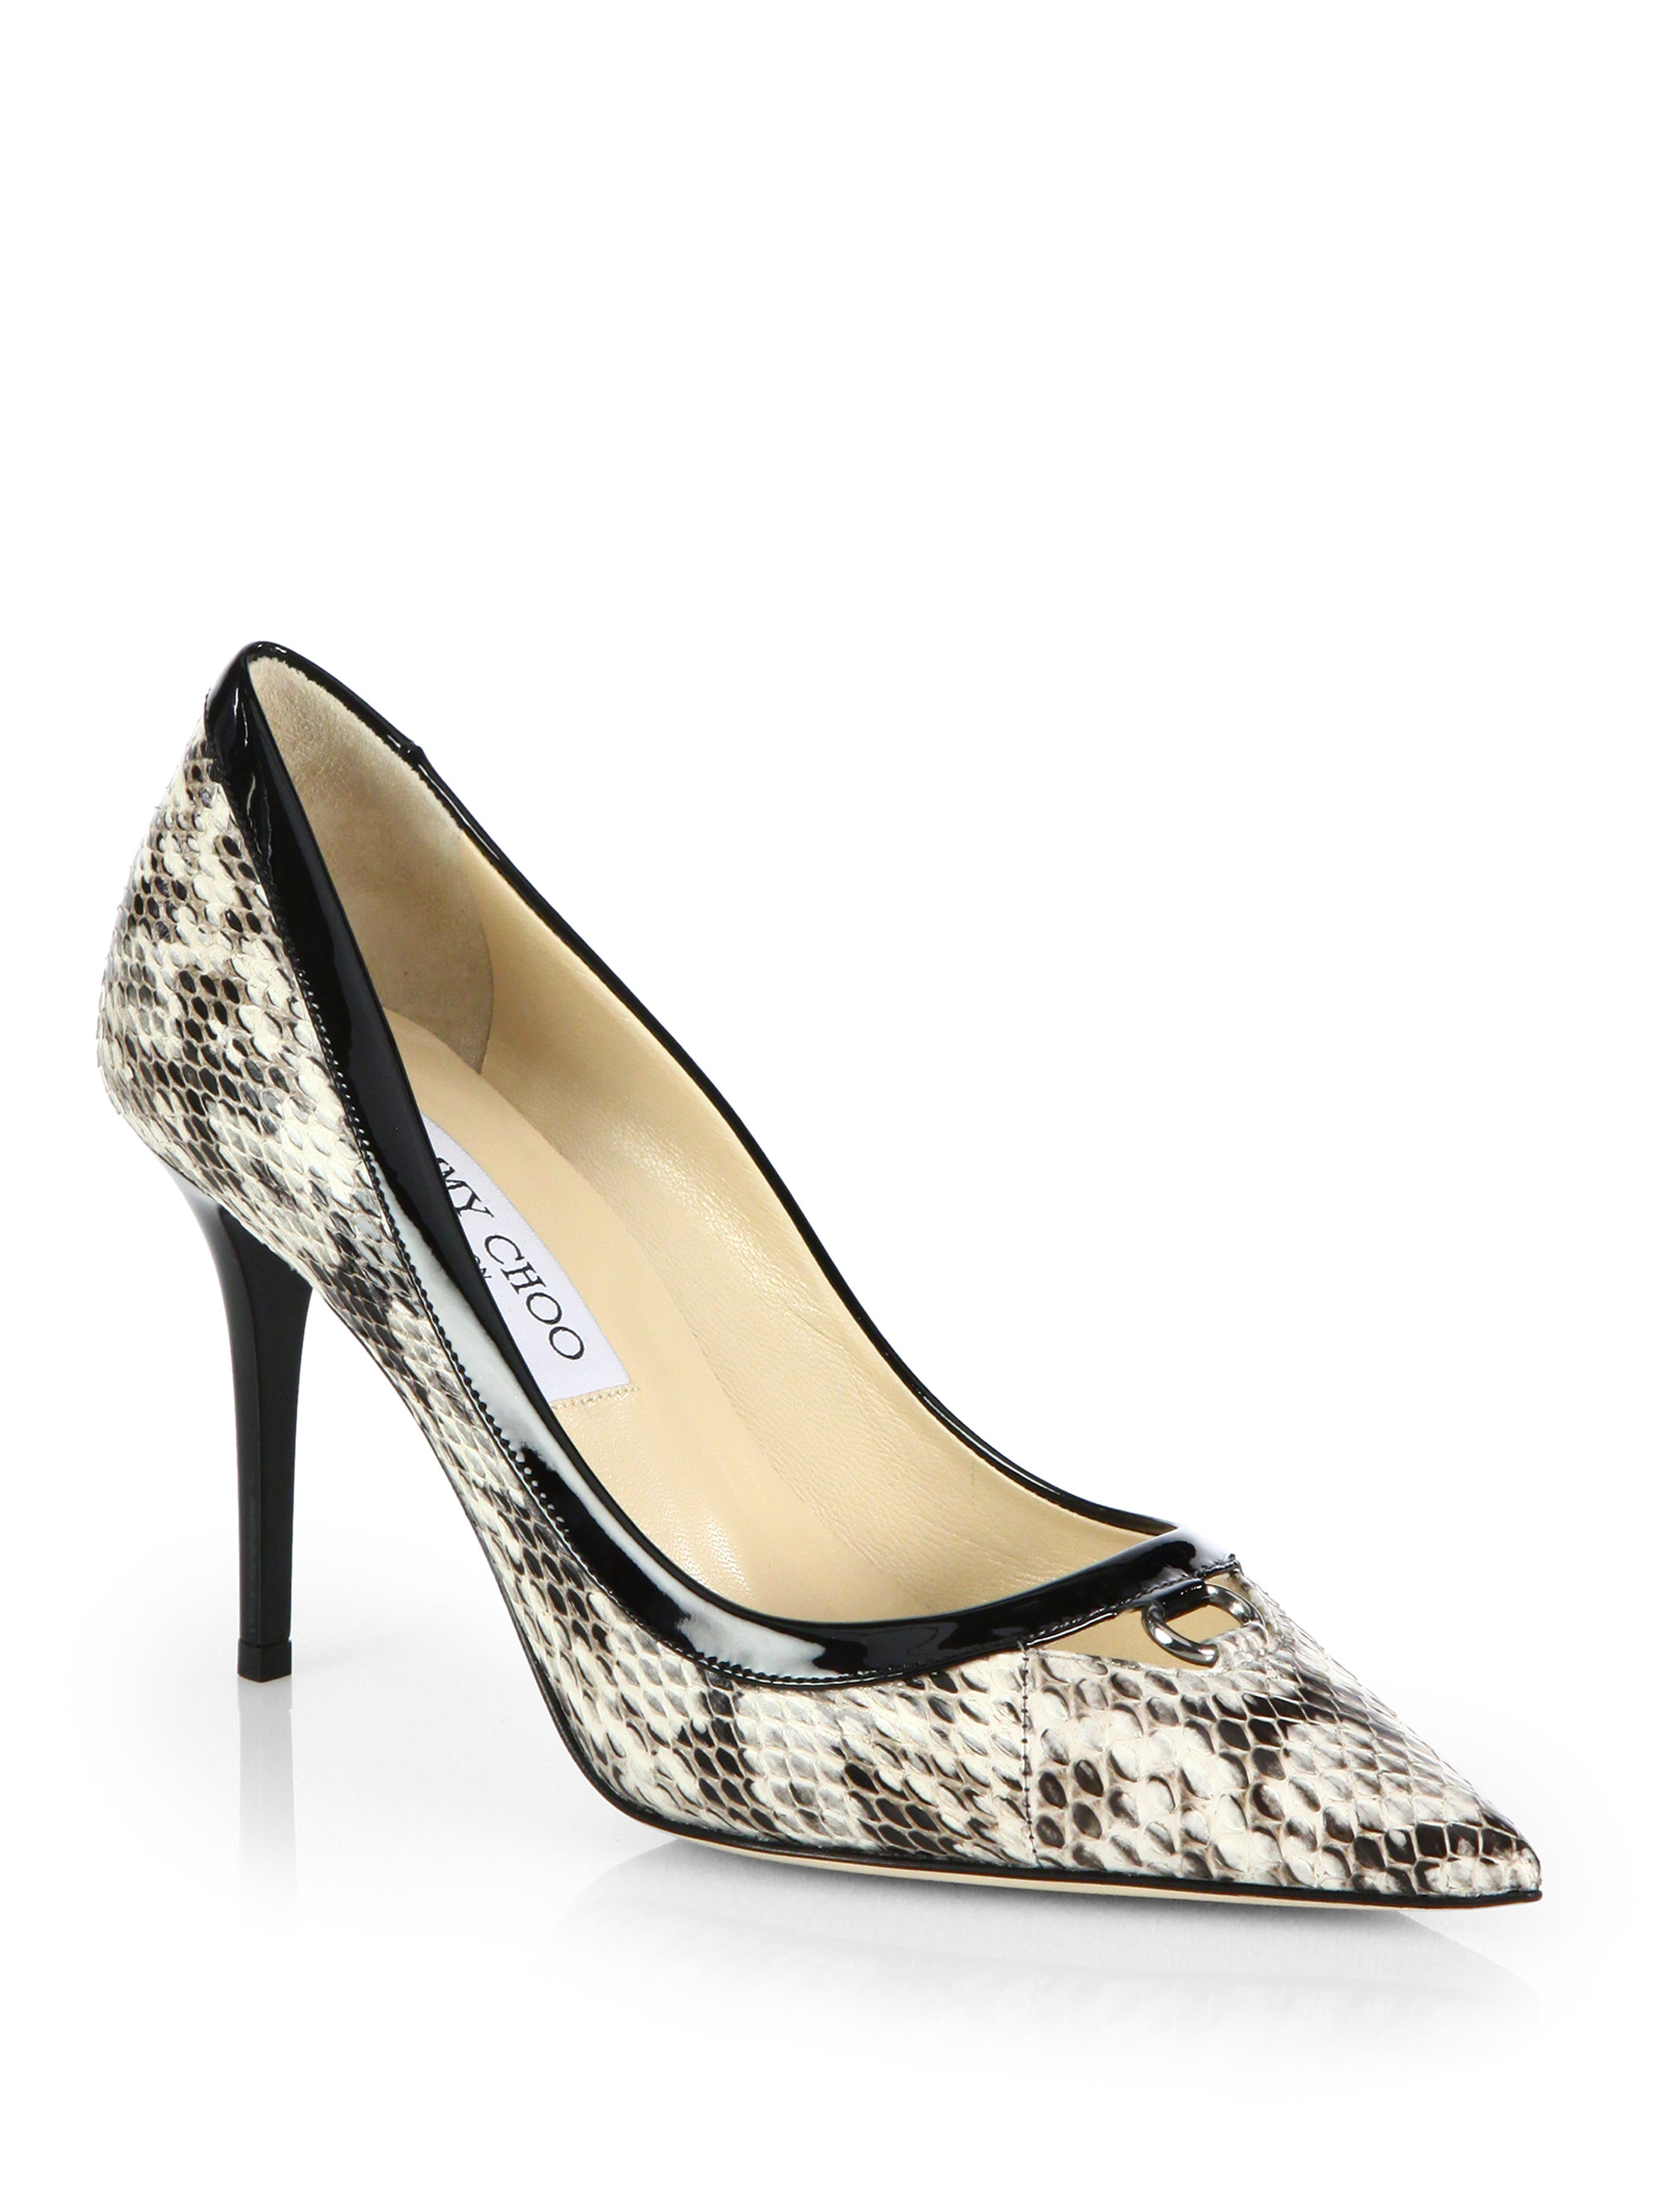 5b779a88f8e4 ... women 29c29 get lyst jimmy choo hype snakeskin patent leather point toe  pumps in ed5d2 2f3a4 ...